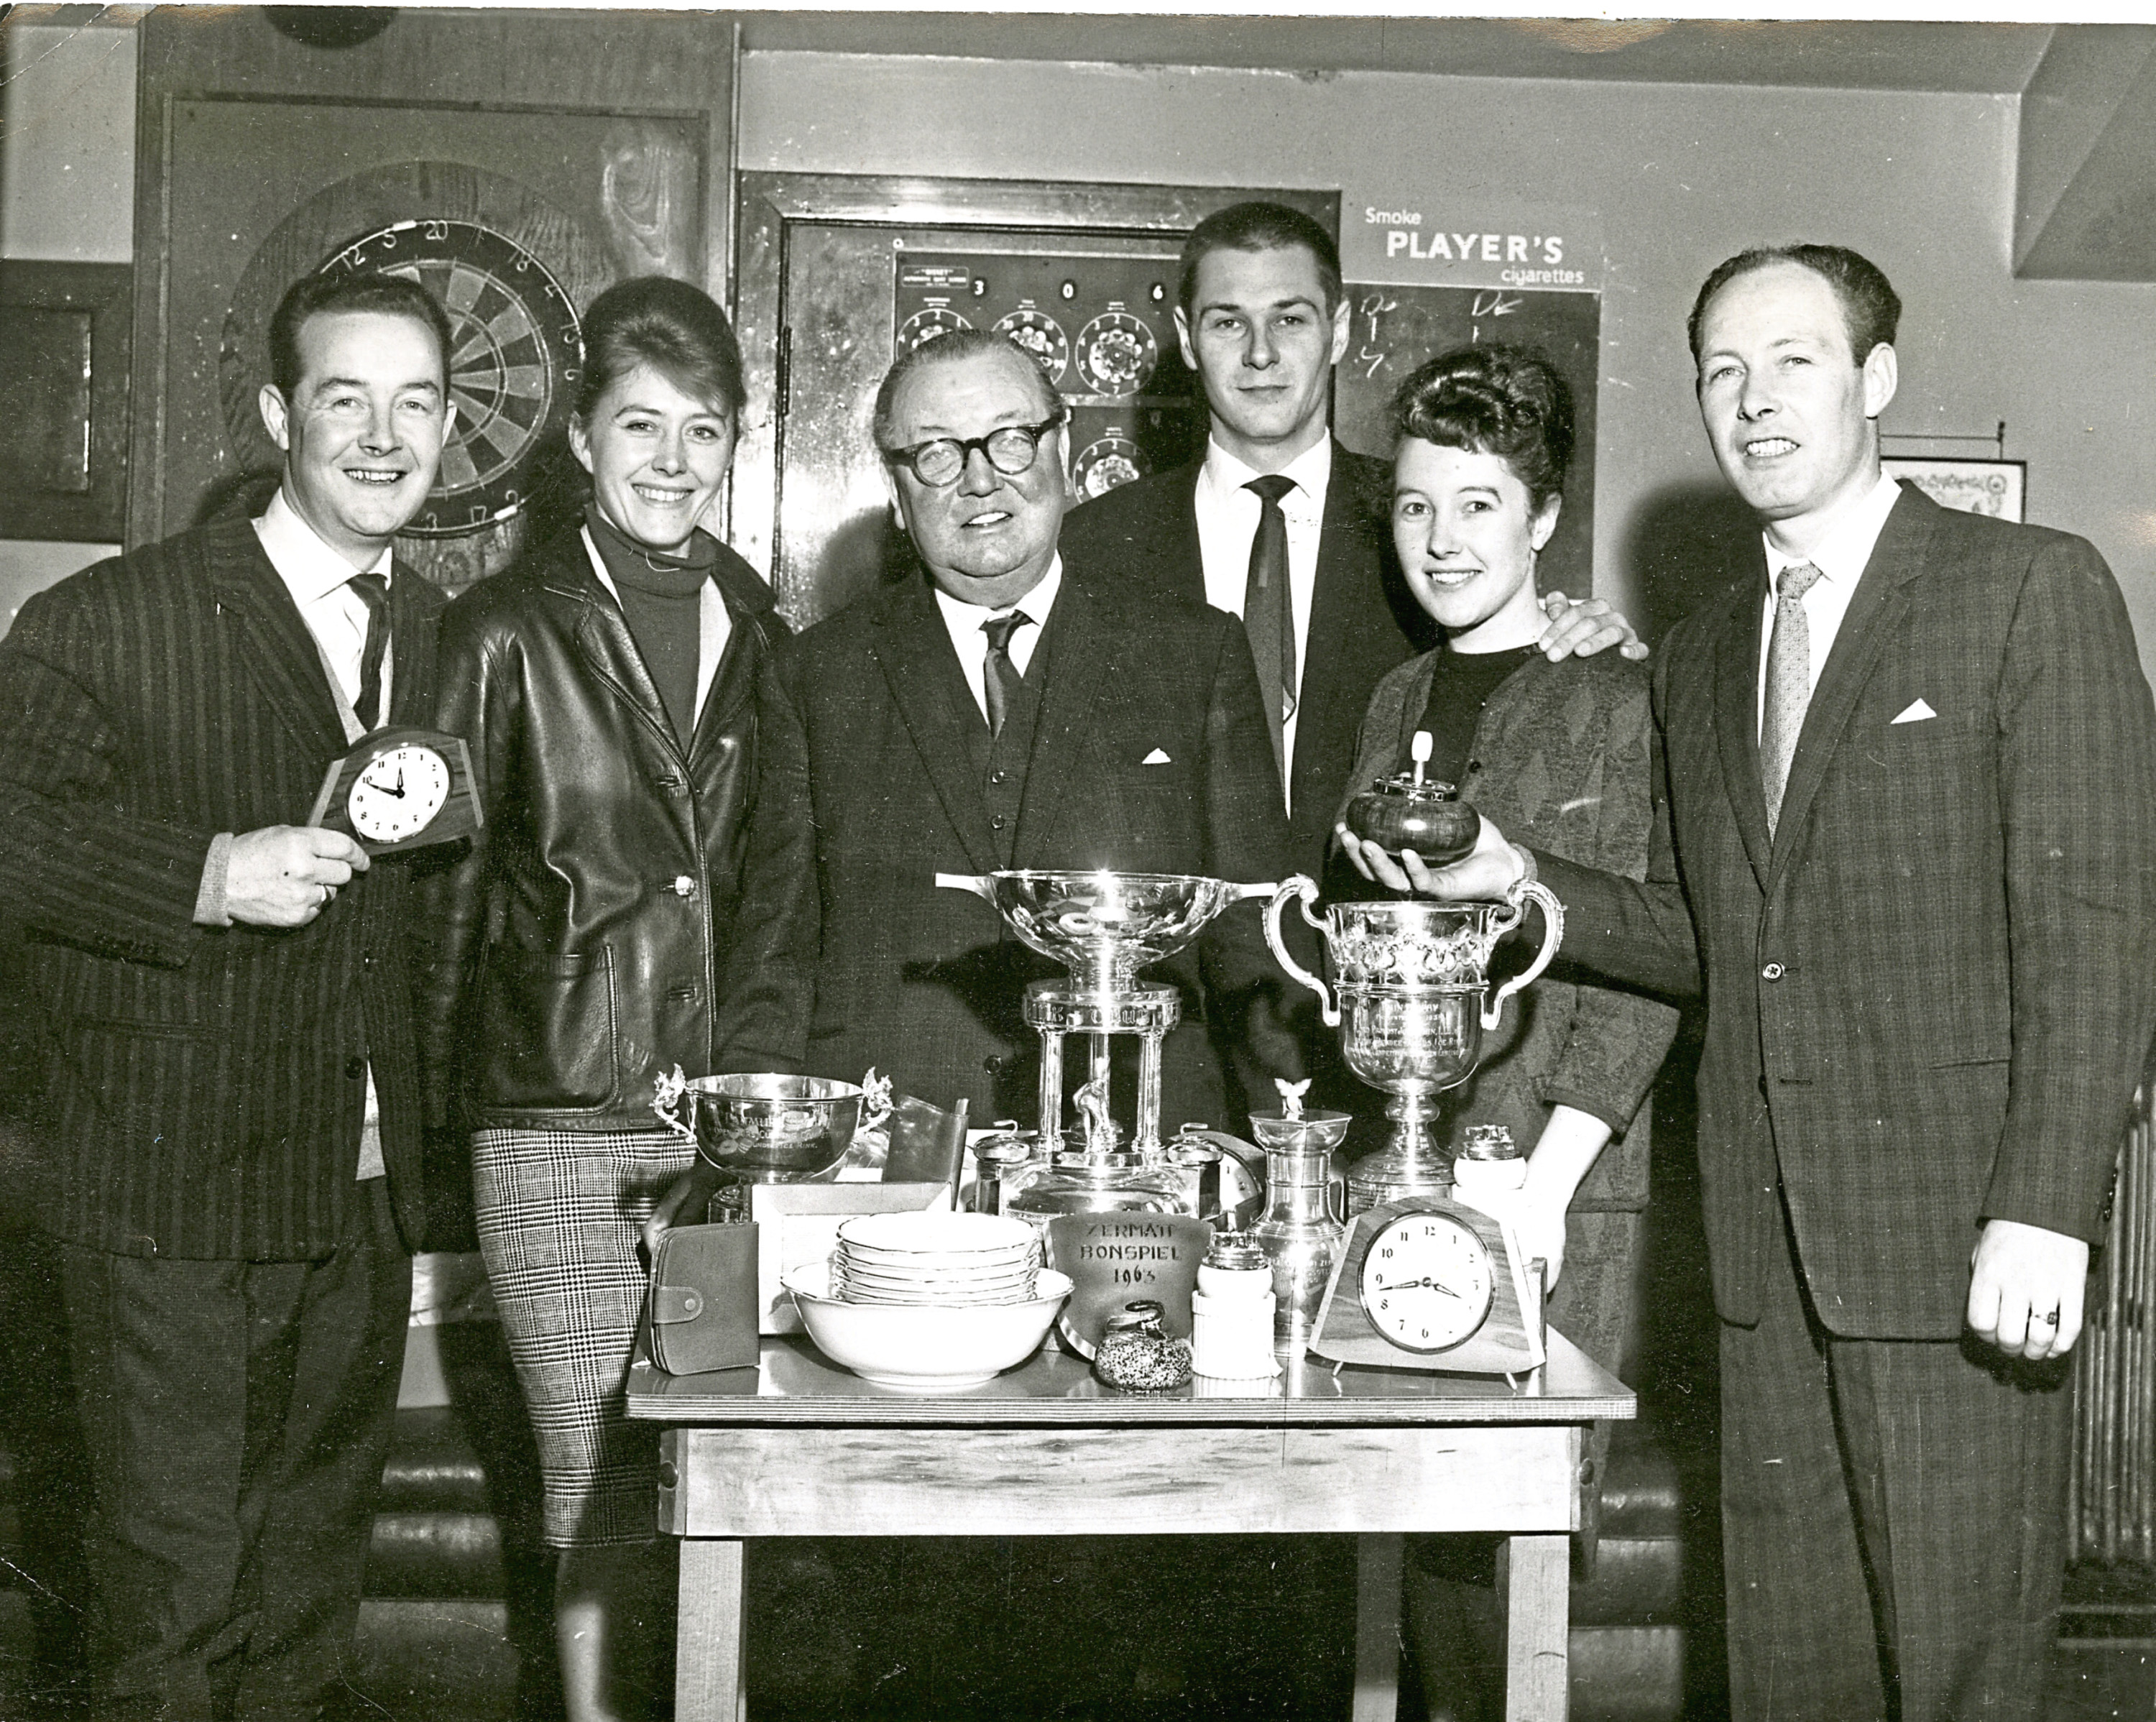 George Grant and members of his family pictured in 1963.